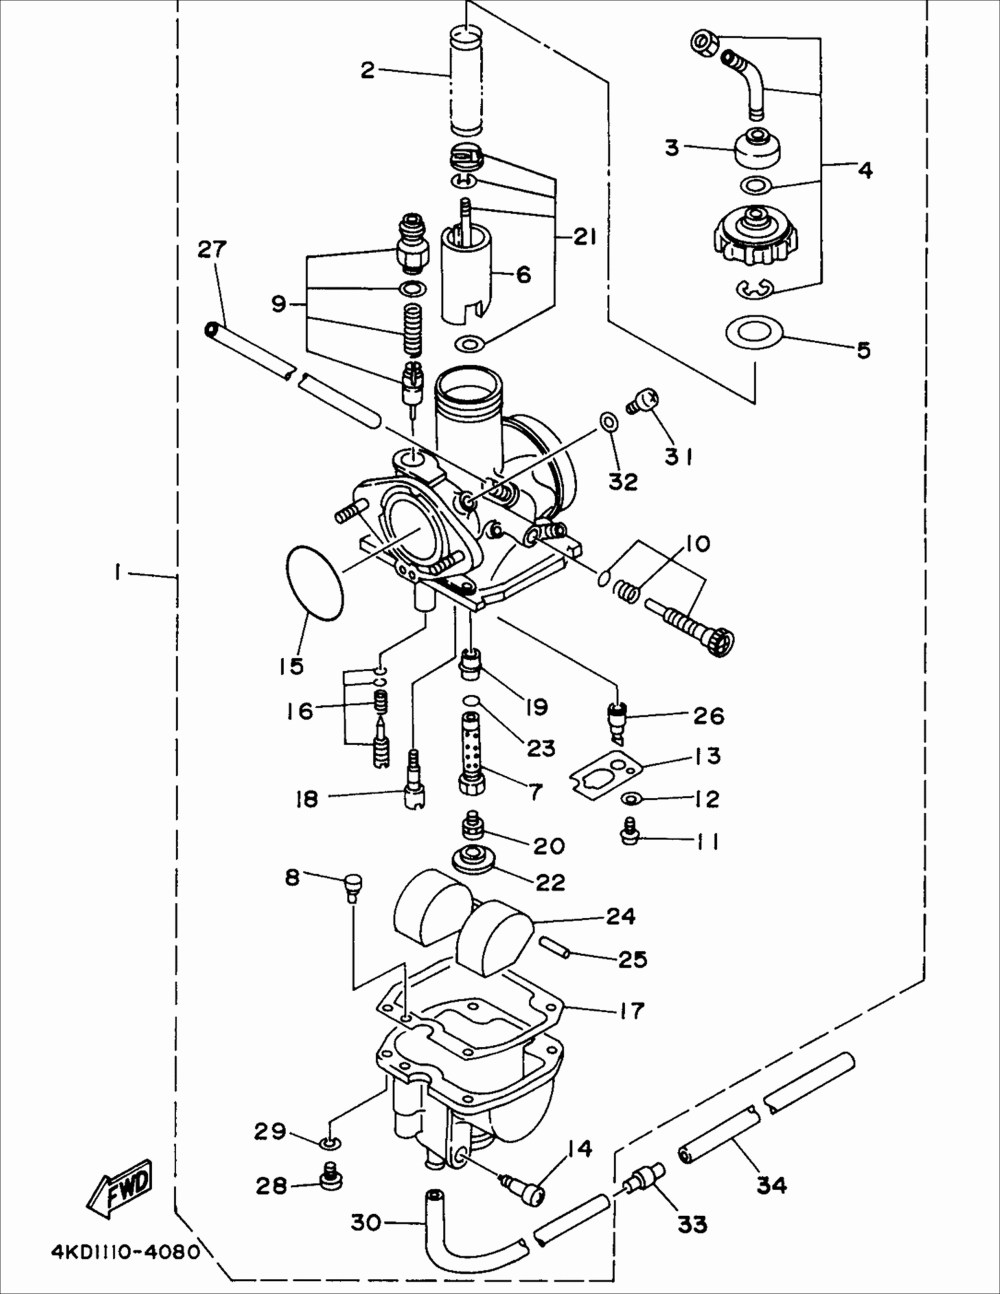 medium resolution of fuse box in 2002 pontiac bonneville wiring diagram center 02 bonneville wire diagram wiring diagram2002 pontiac